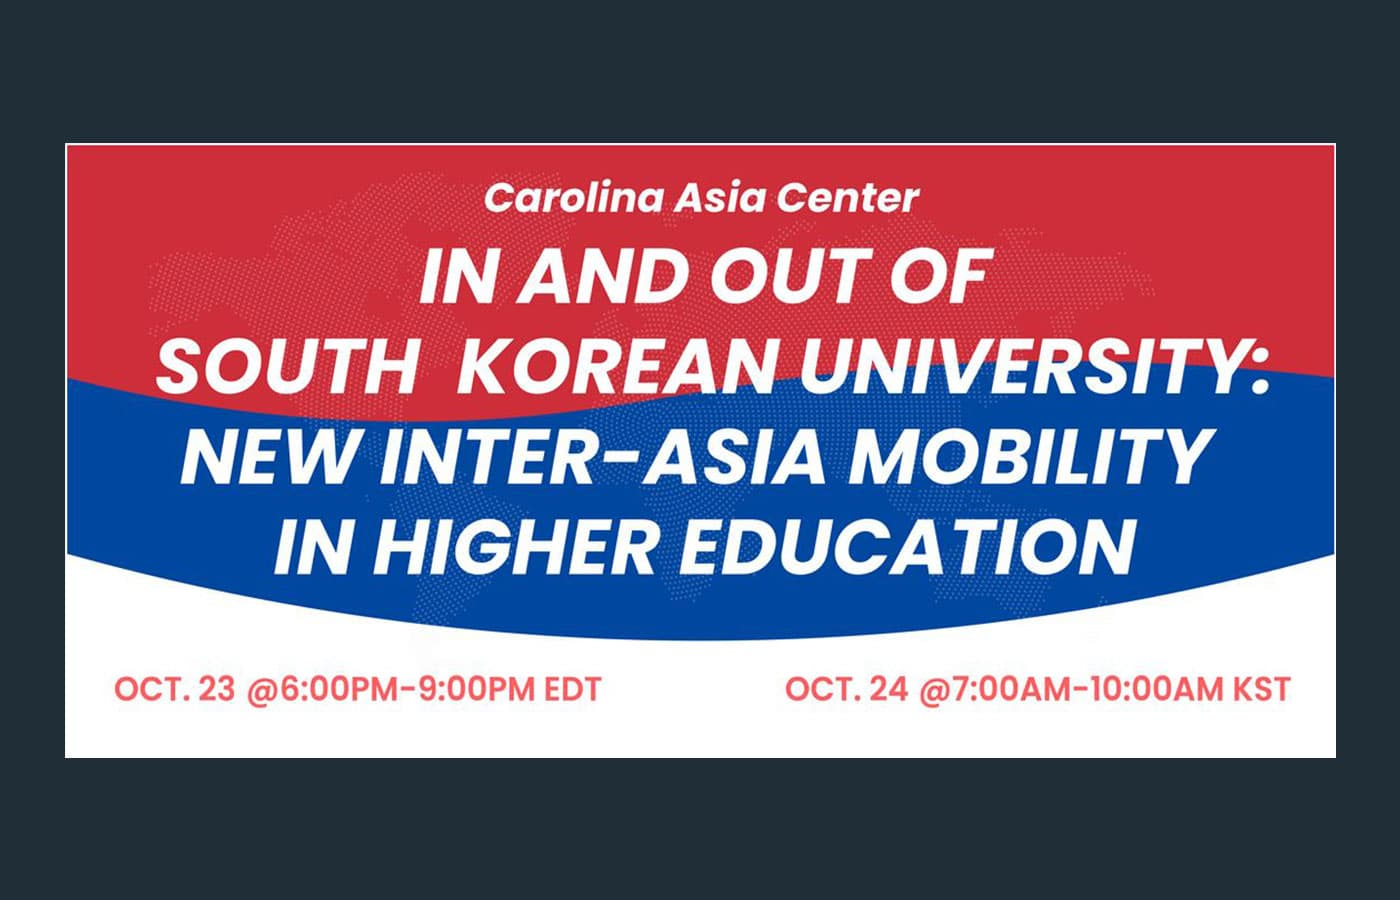 ICE Director & Deputy Director to Present at Conference on Korean Inter-Asian Mobility